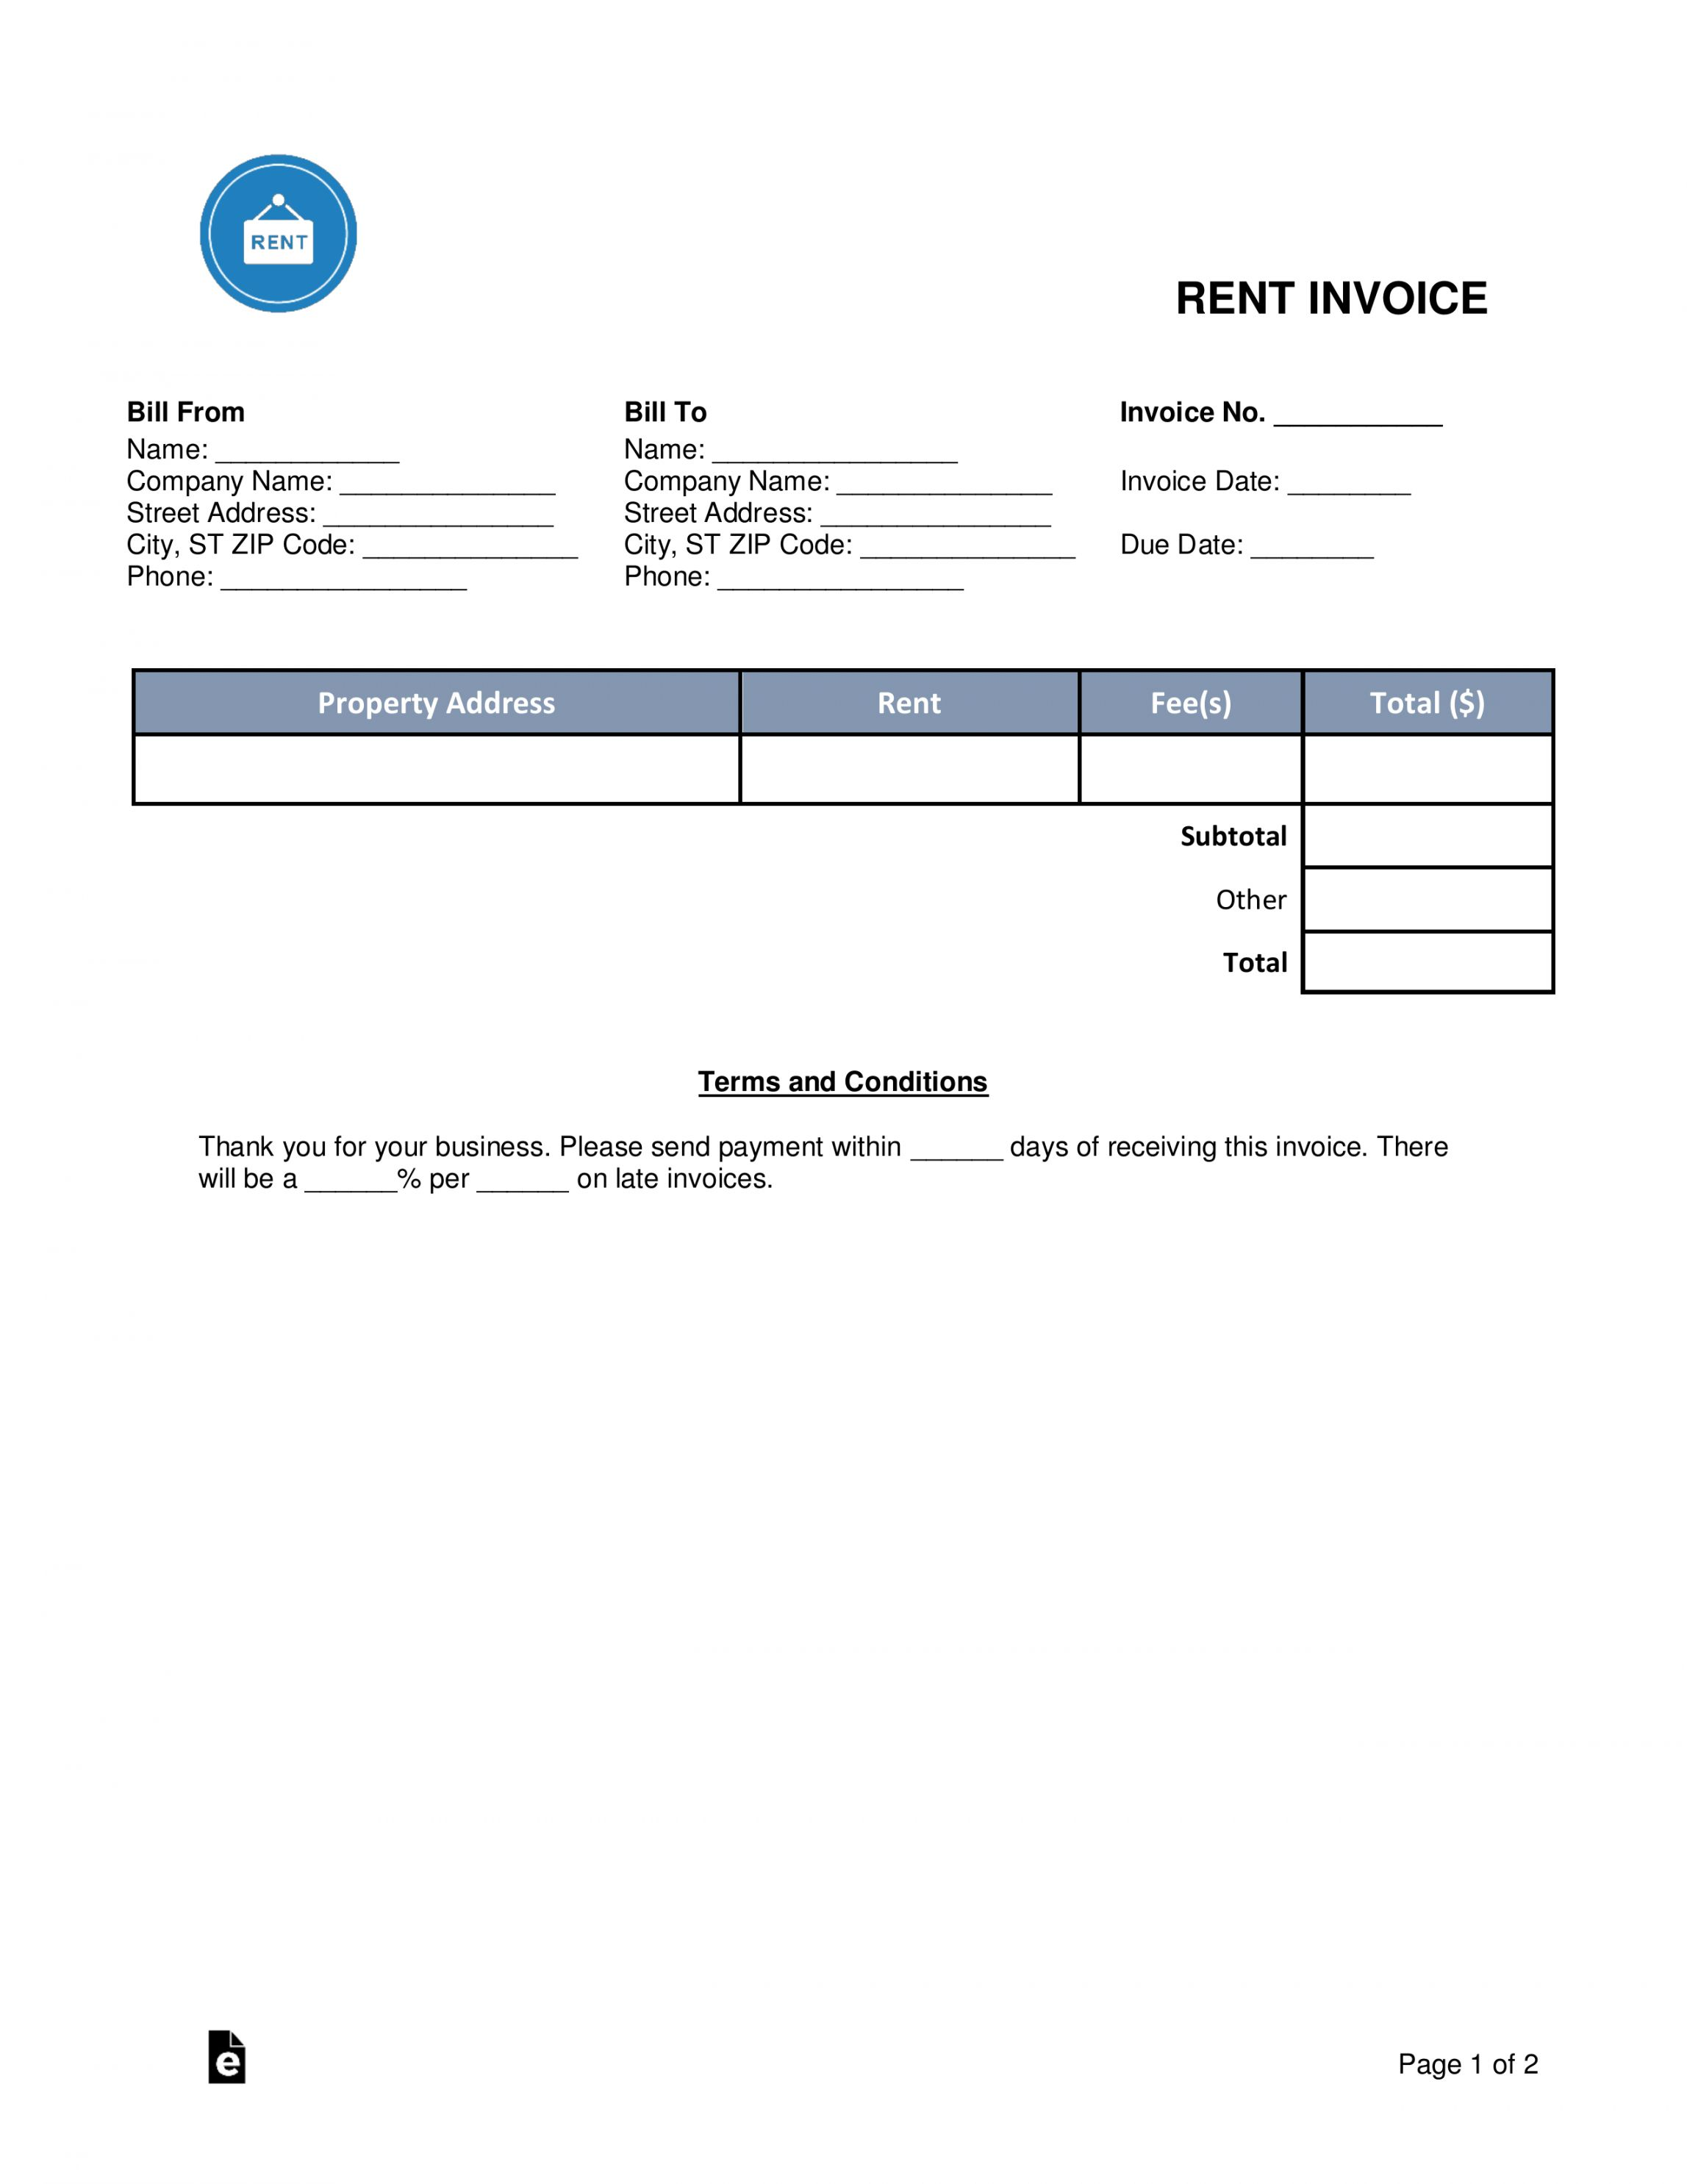 Get Our Sample Of Rent Invoice Receipt Template Invoice Template Word Receipt Template Invoice Template